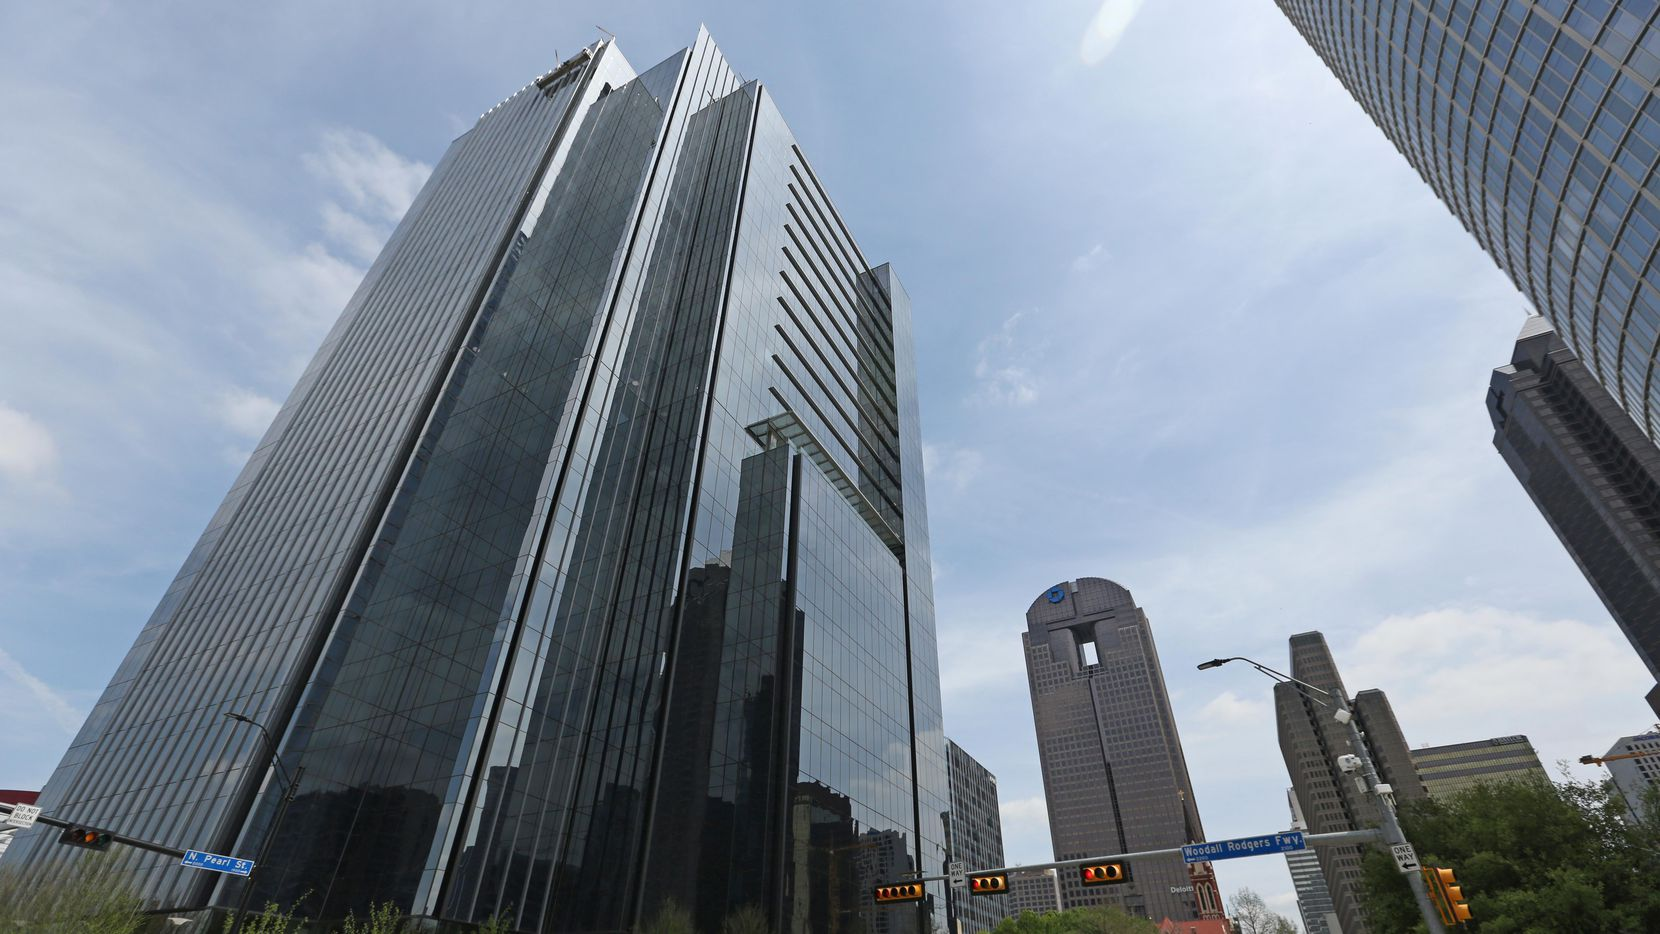 Maverick Capital is moving from Uptown to downtown Dallas' new 1900 Pearl tower.